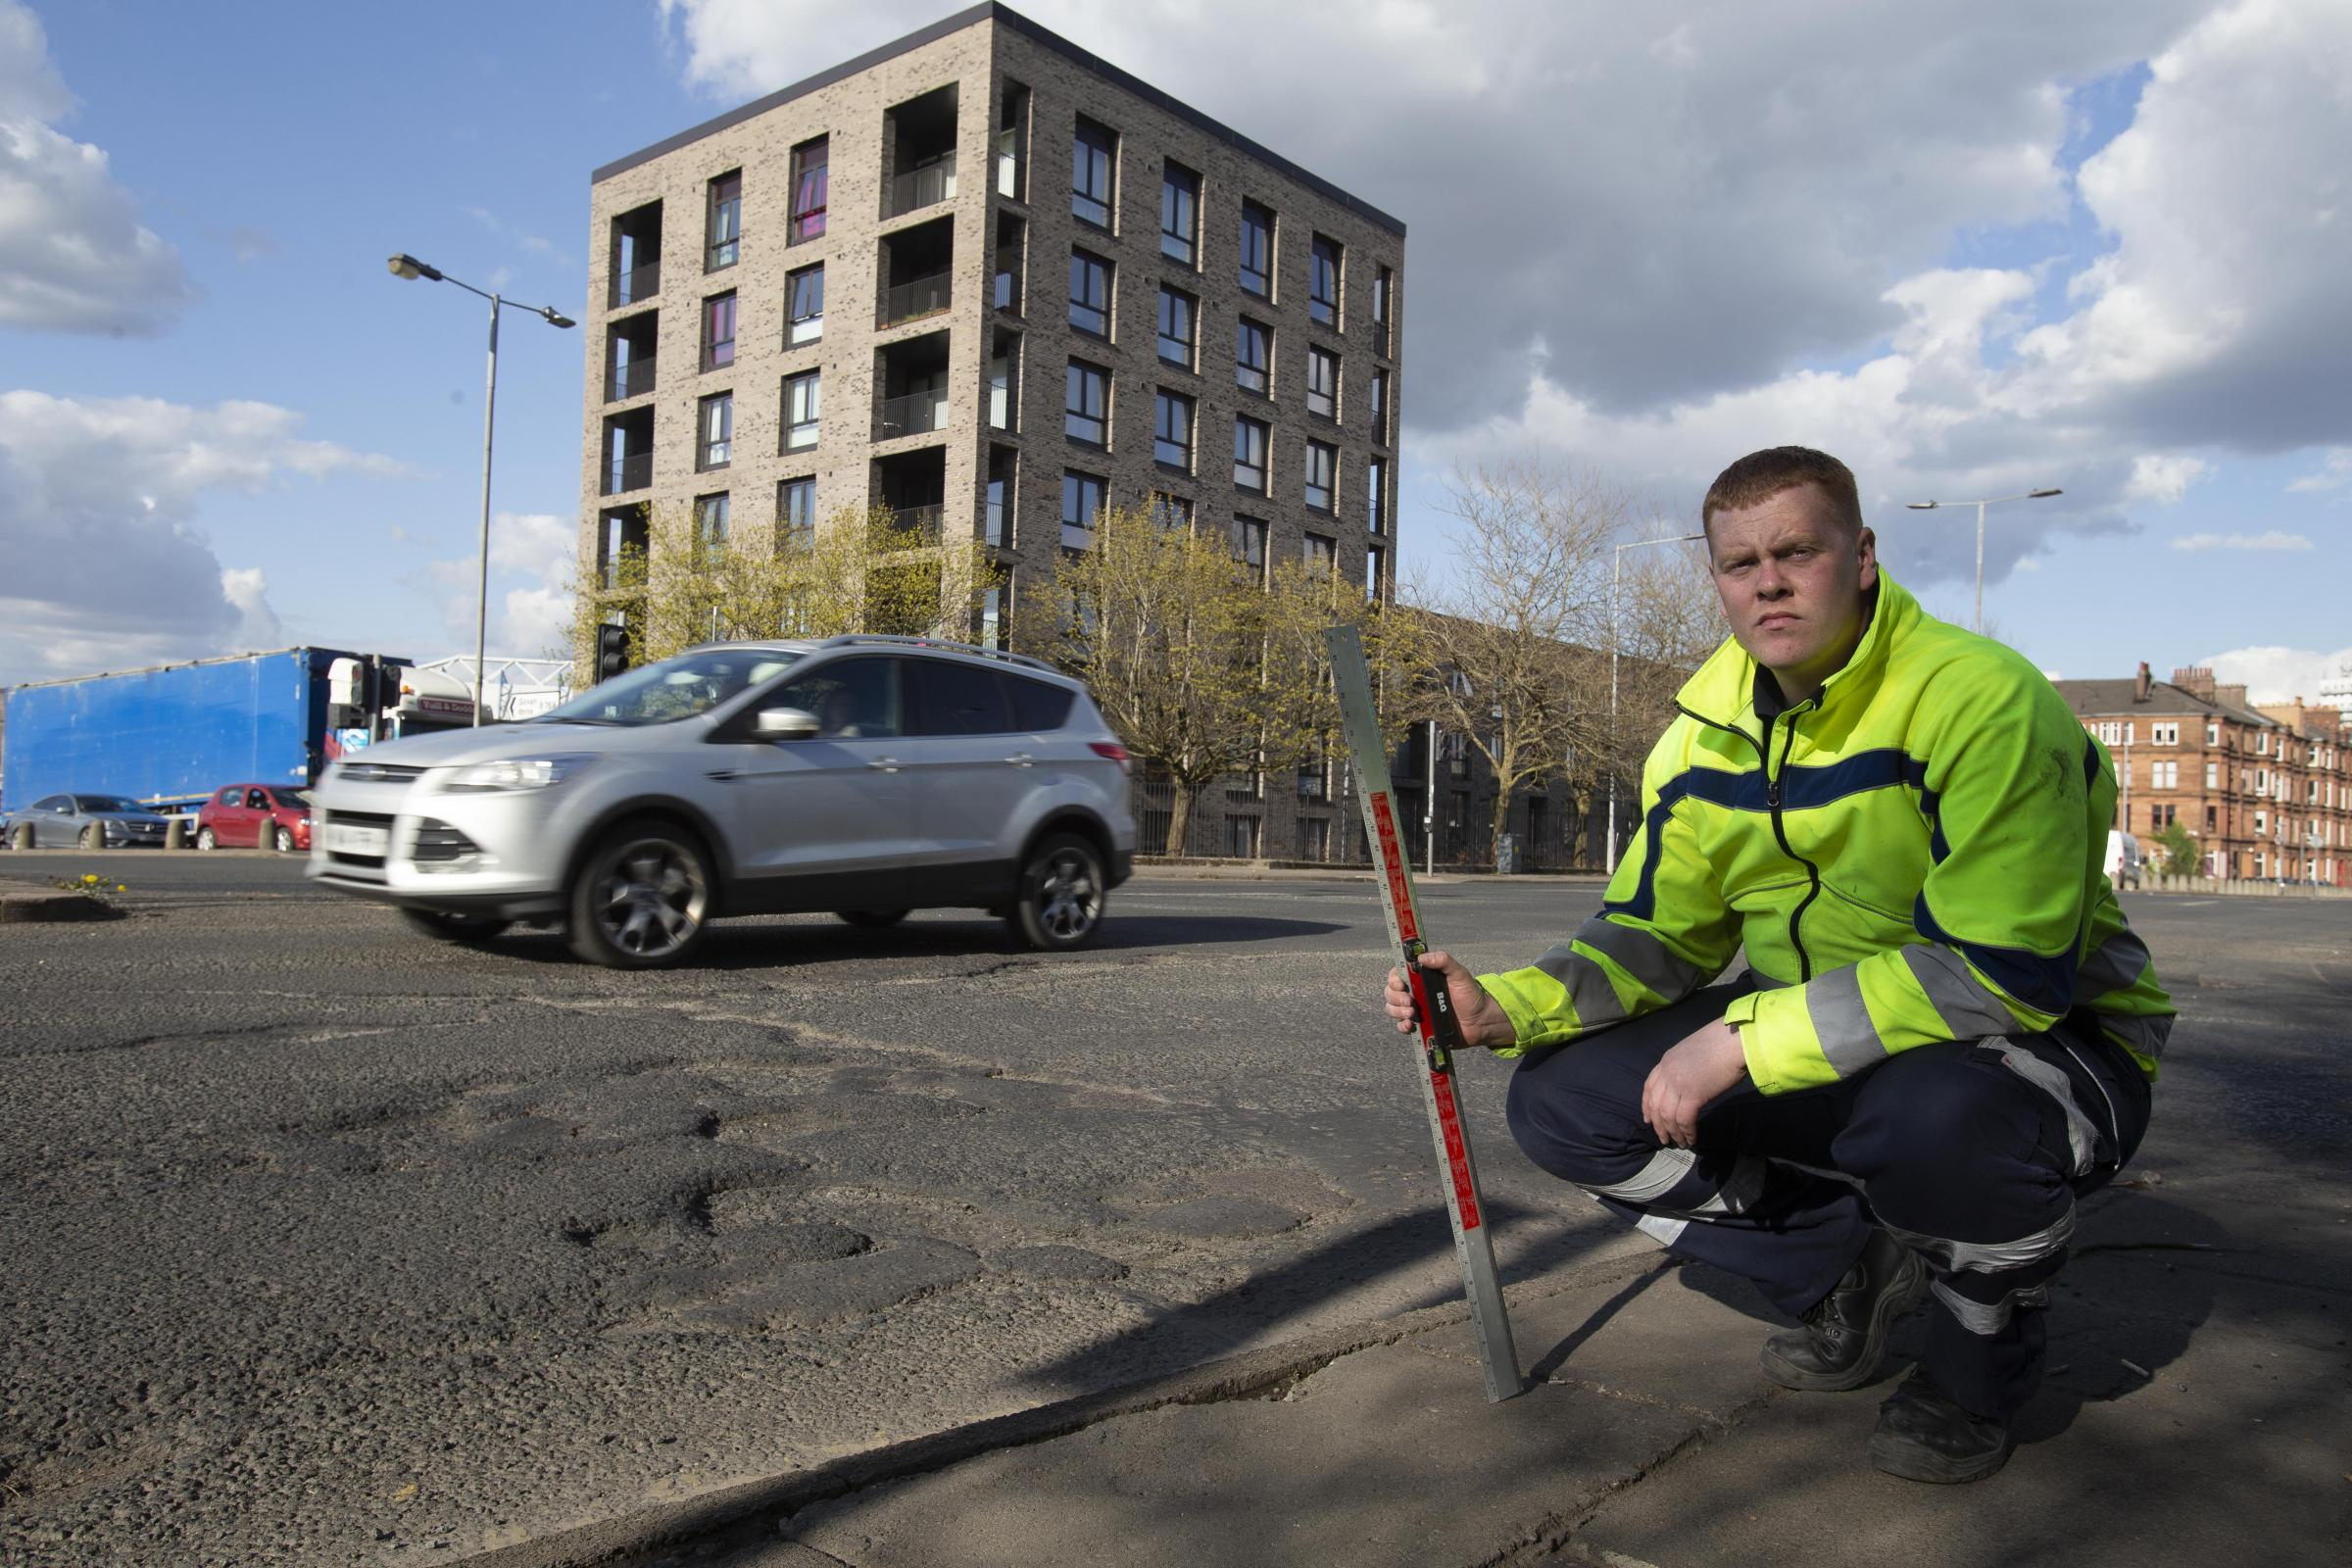 Meet the Glasgow man on a quest to conquer pothole menace in the city and beyond